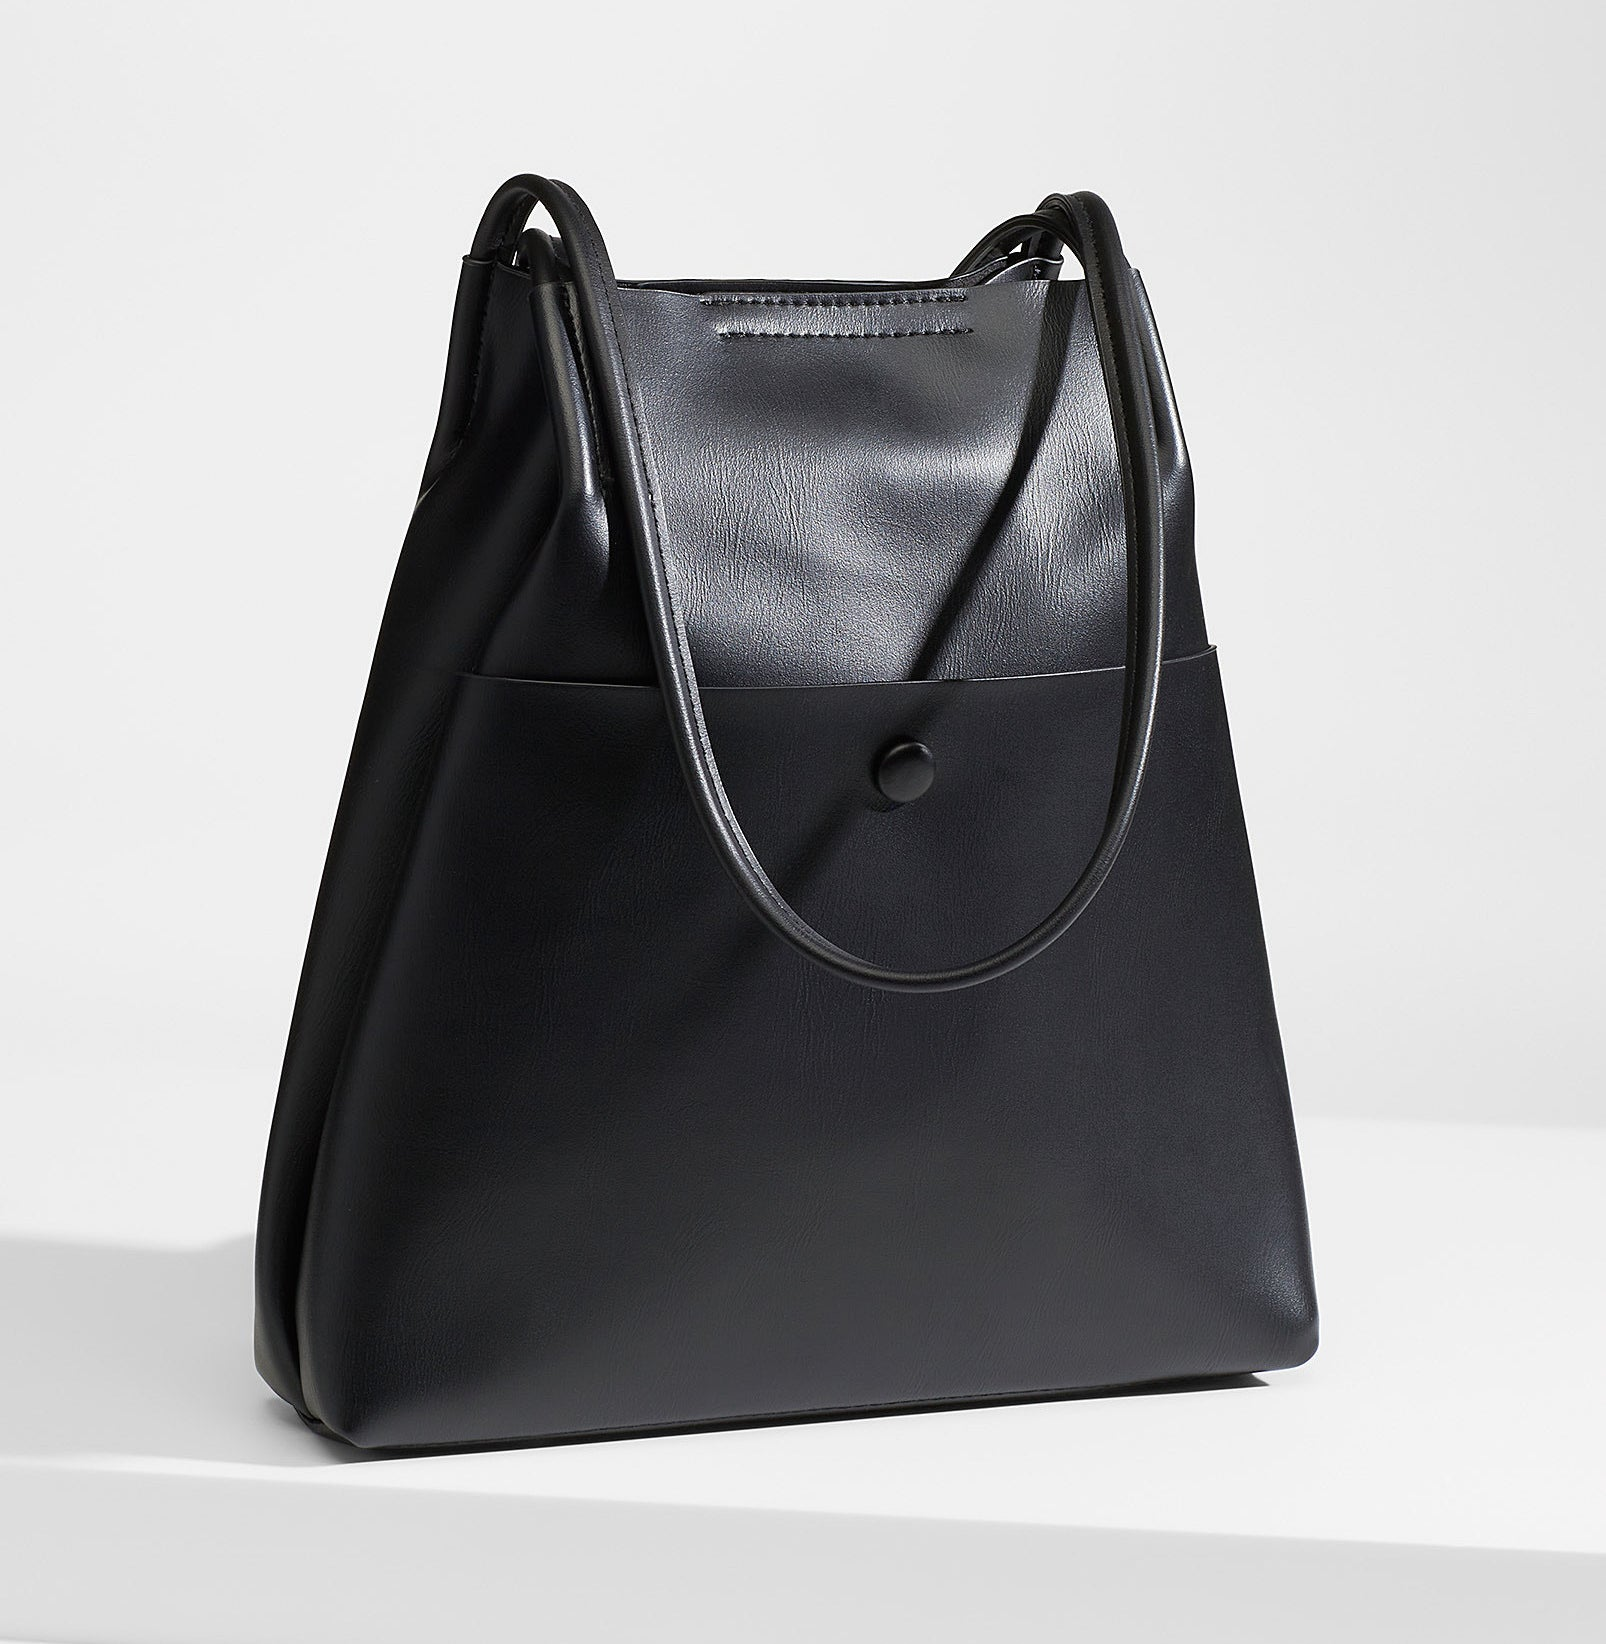 A large faux leather bag with thin long straps